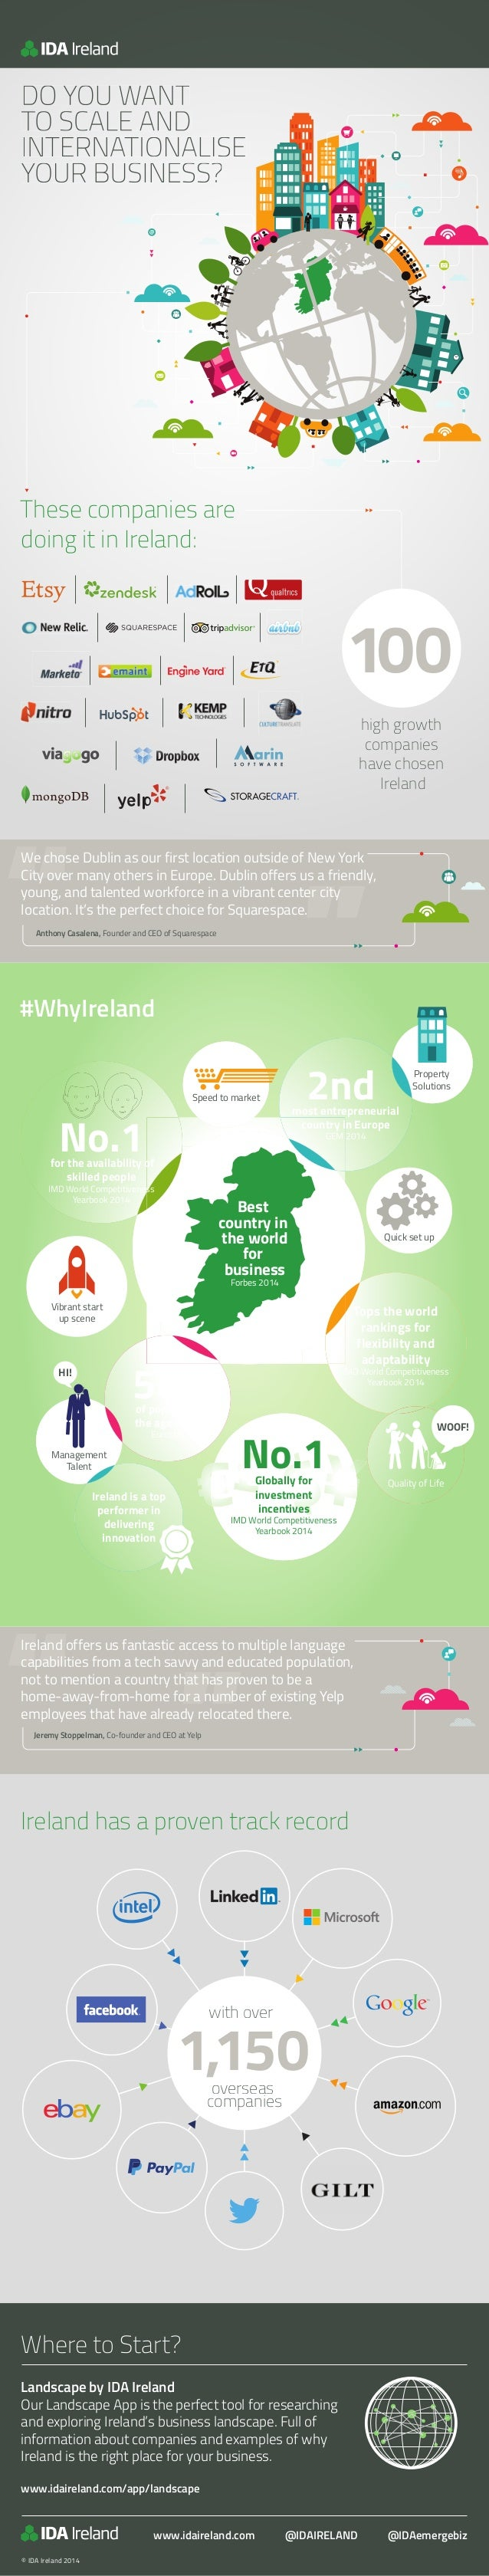 DO YOU WANT TO SCALE AND INTERNATIONALISE YOUR BUSINESS? These companies are doing it in Ireland: #WhyIreland high growth ...